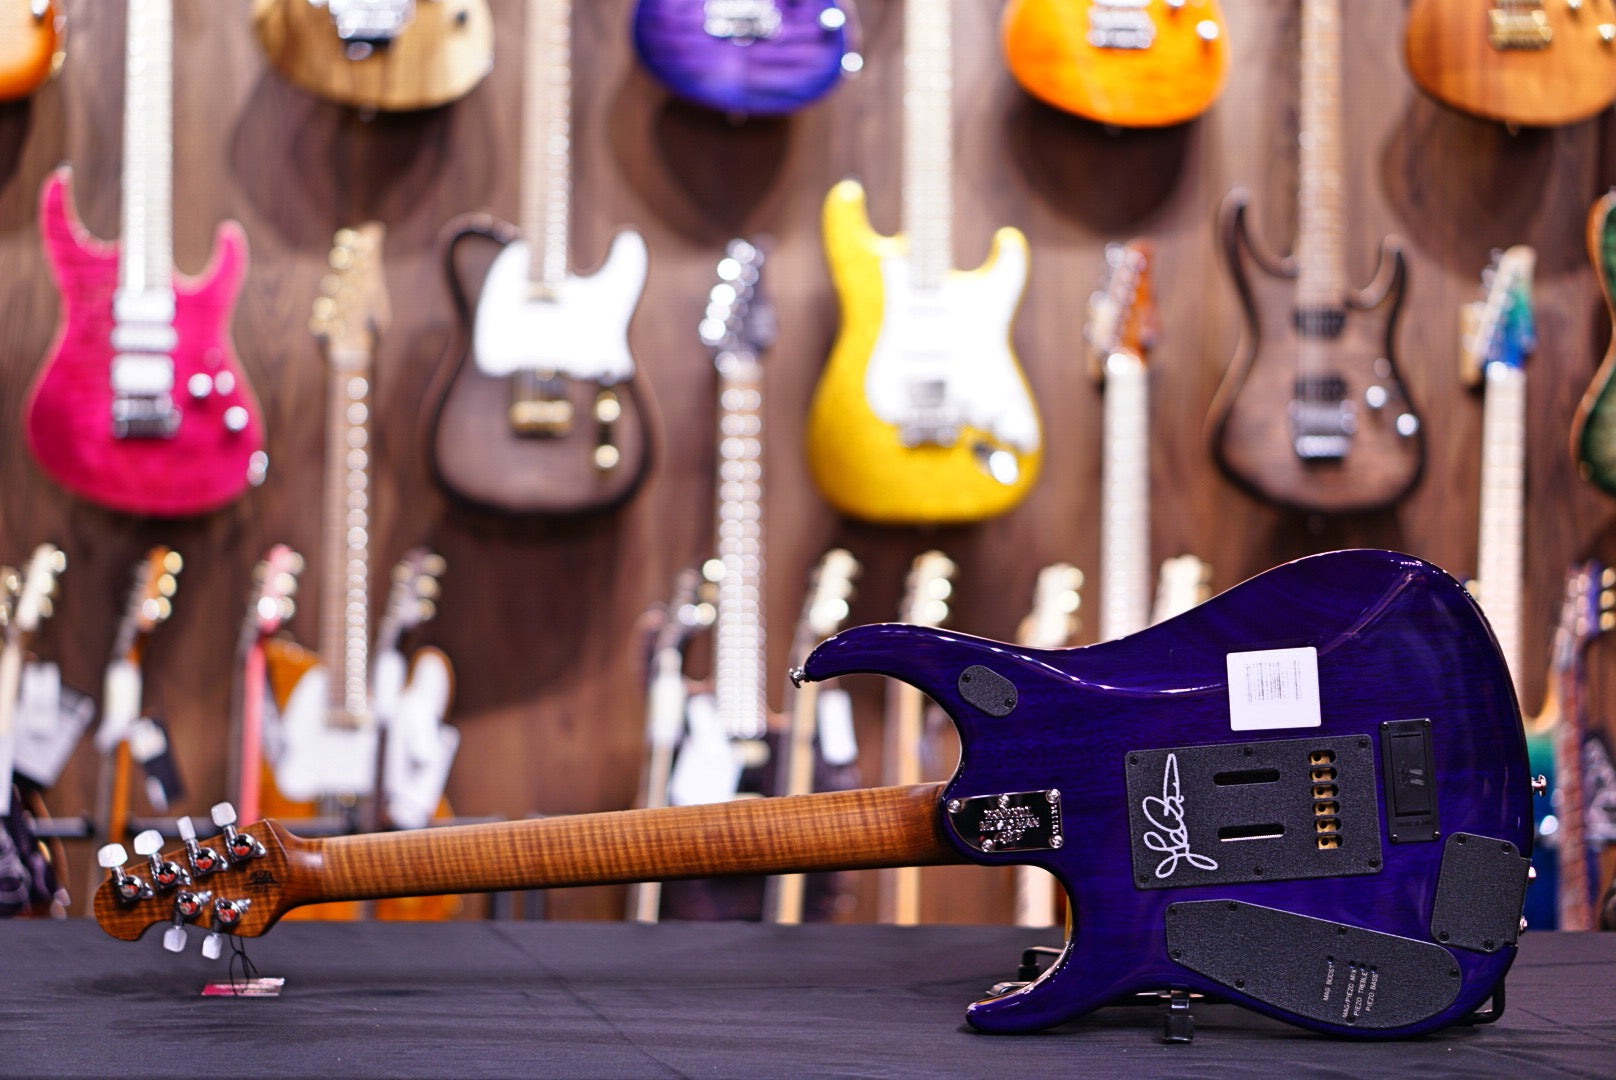 Ernie Ball Music Man John Petrucci JP15 Purple Sunset Spalted Musicman - HIENDGUITAR.COM